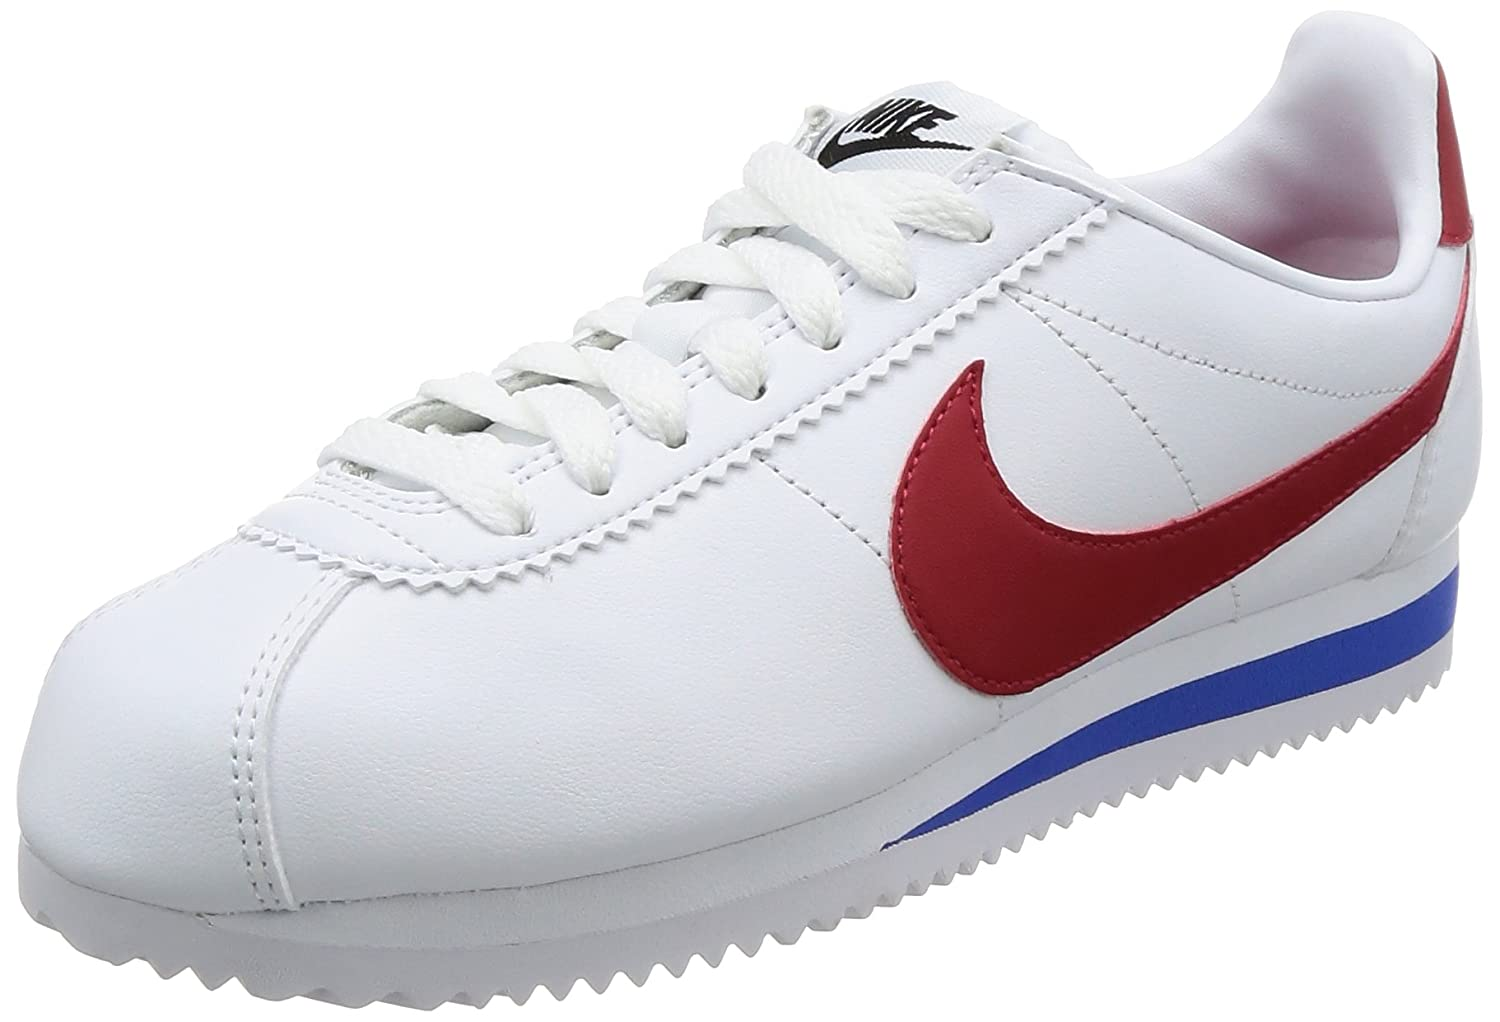 NIKE Women's Classic Cortez Leather Casual Shoe B01N4IC8W5 6.5 B(M) US|White / Varsity Red-varsity Royal